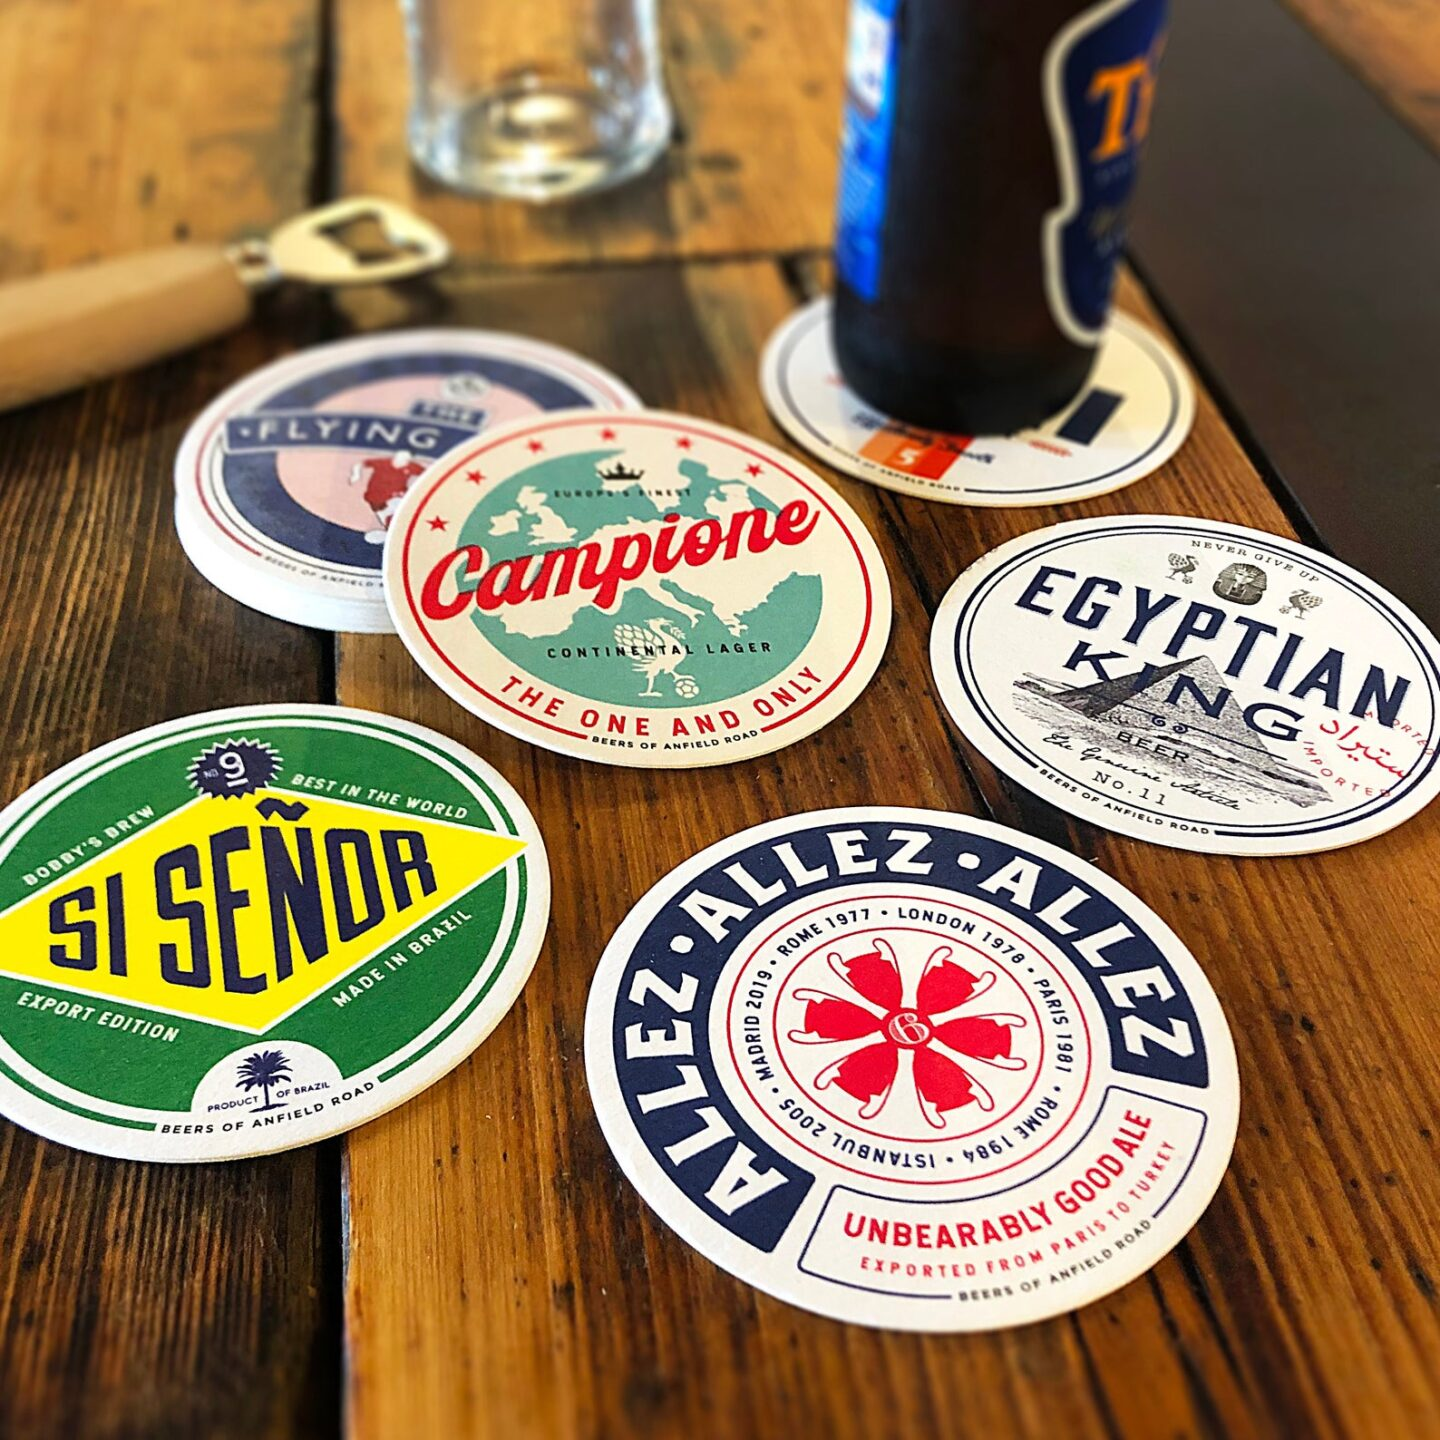 6 Liverpool football club themed beer mats arranged on a wooden table.